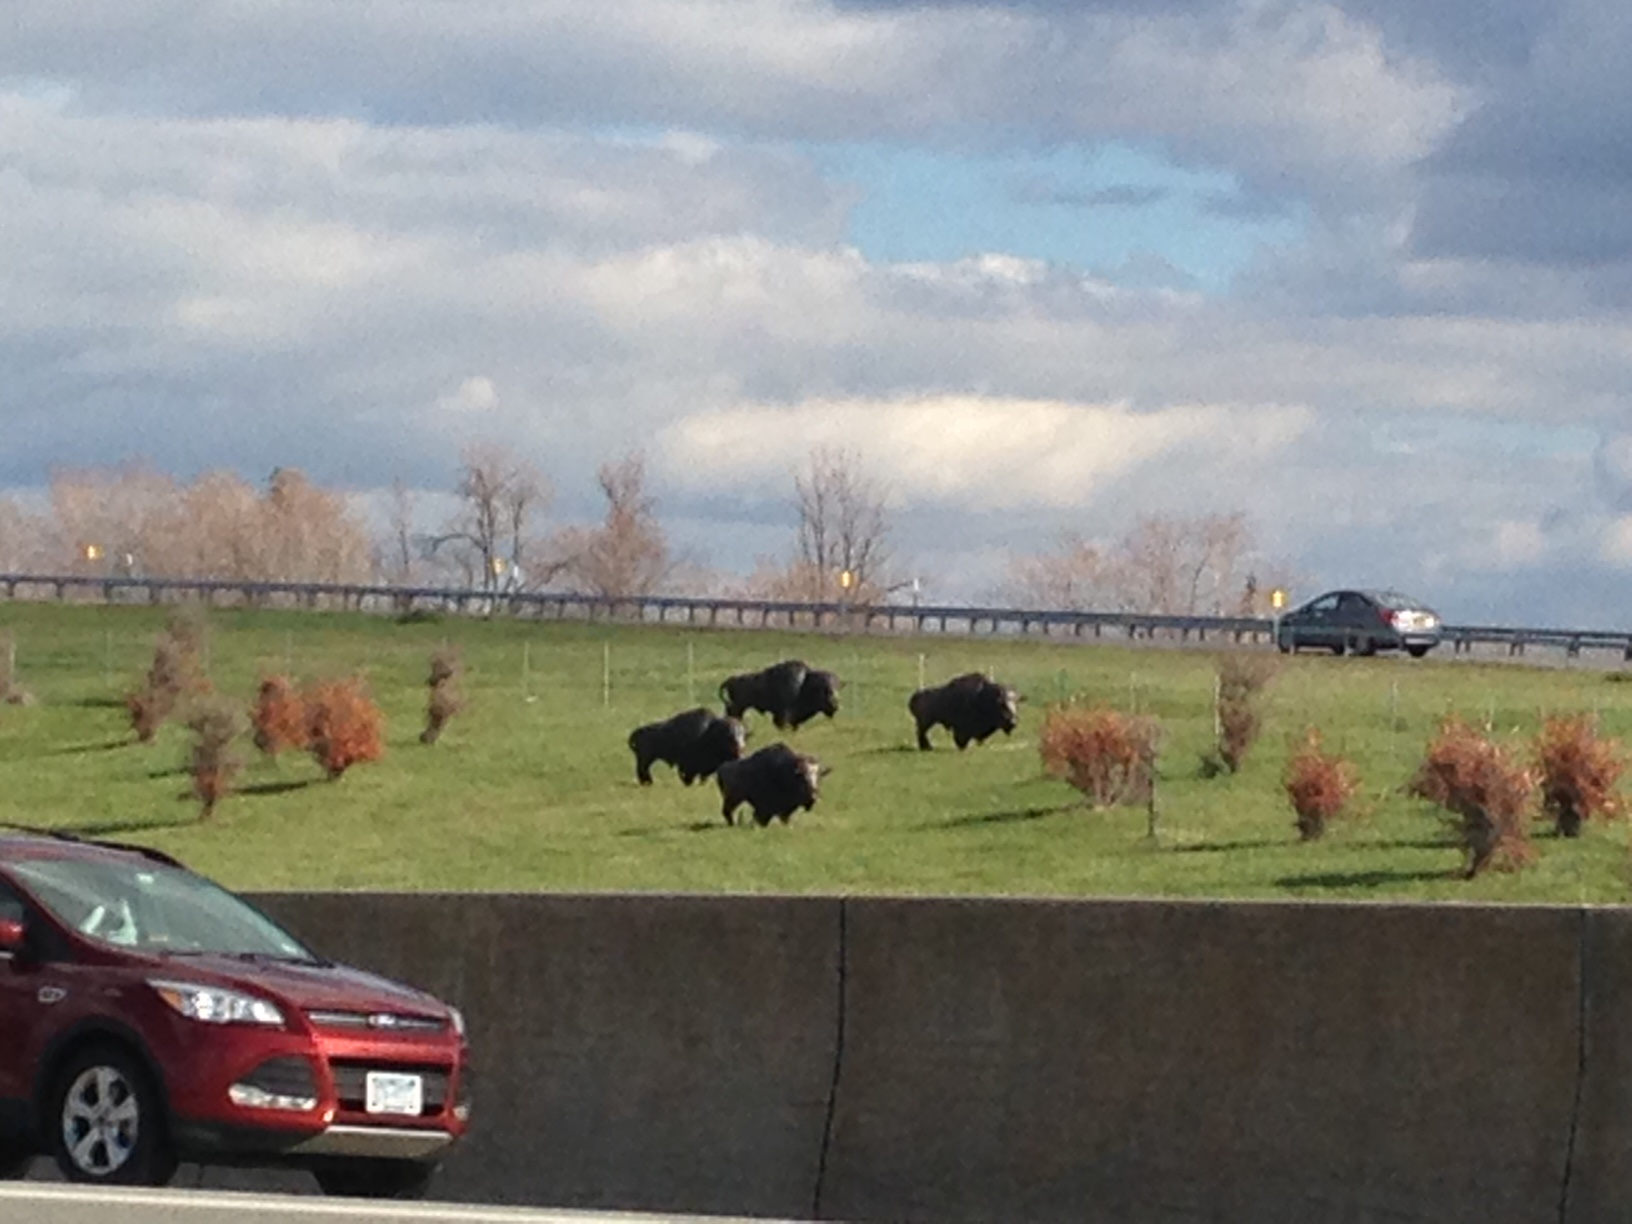 At a thruway interchange. Buffalo statues roam on the fields near the junction of Interstates 90 and 190 in Cheektowaga.